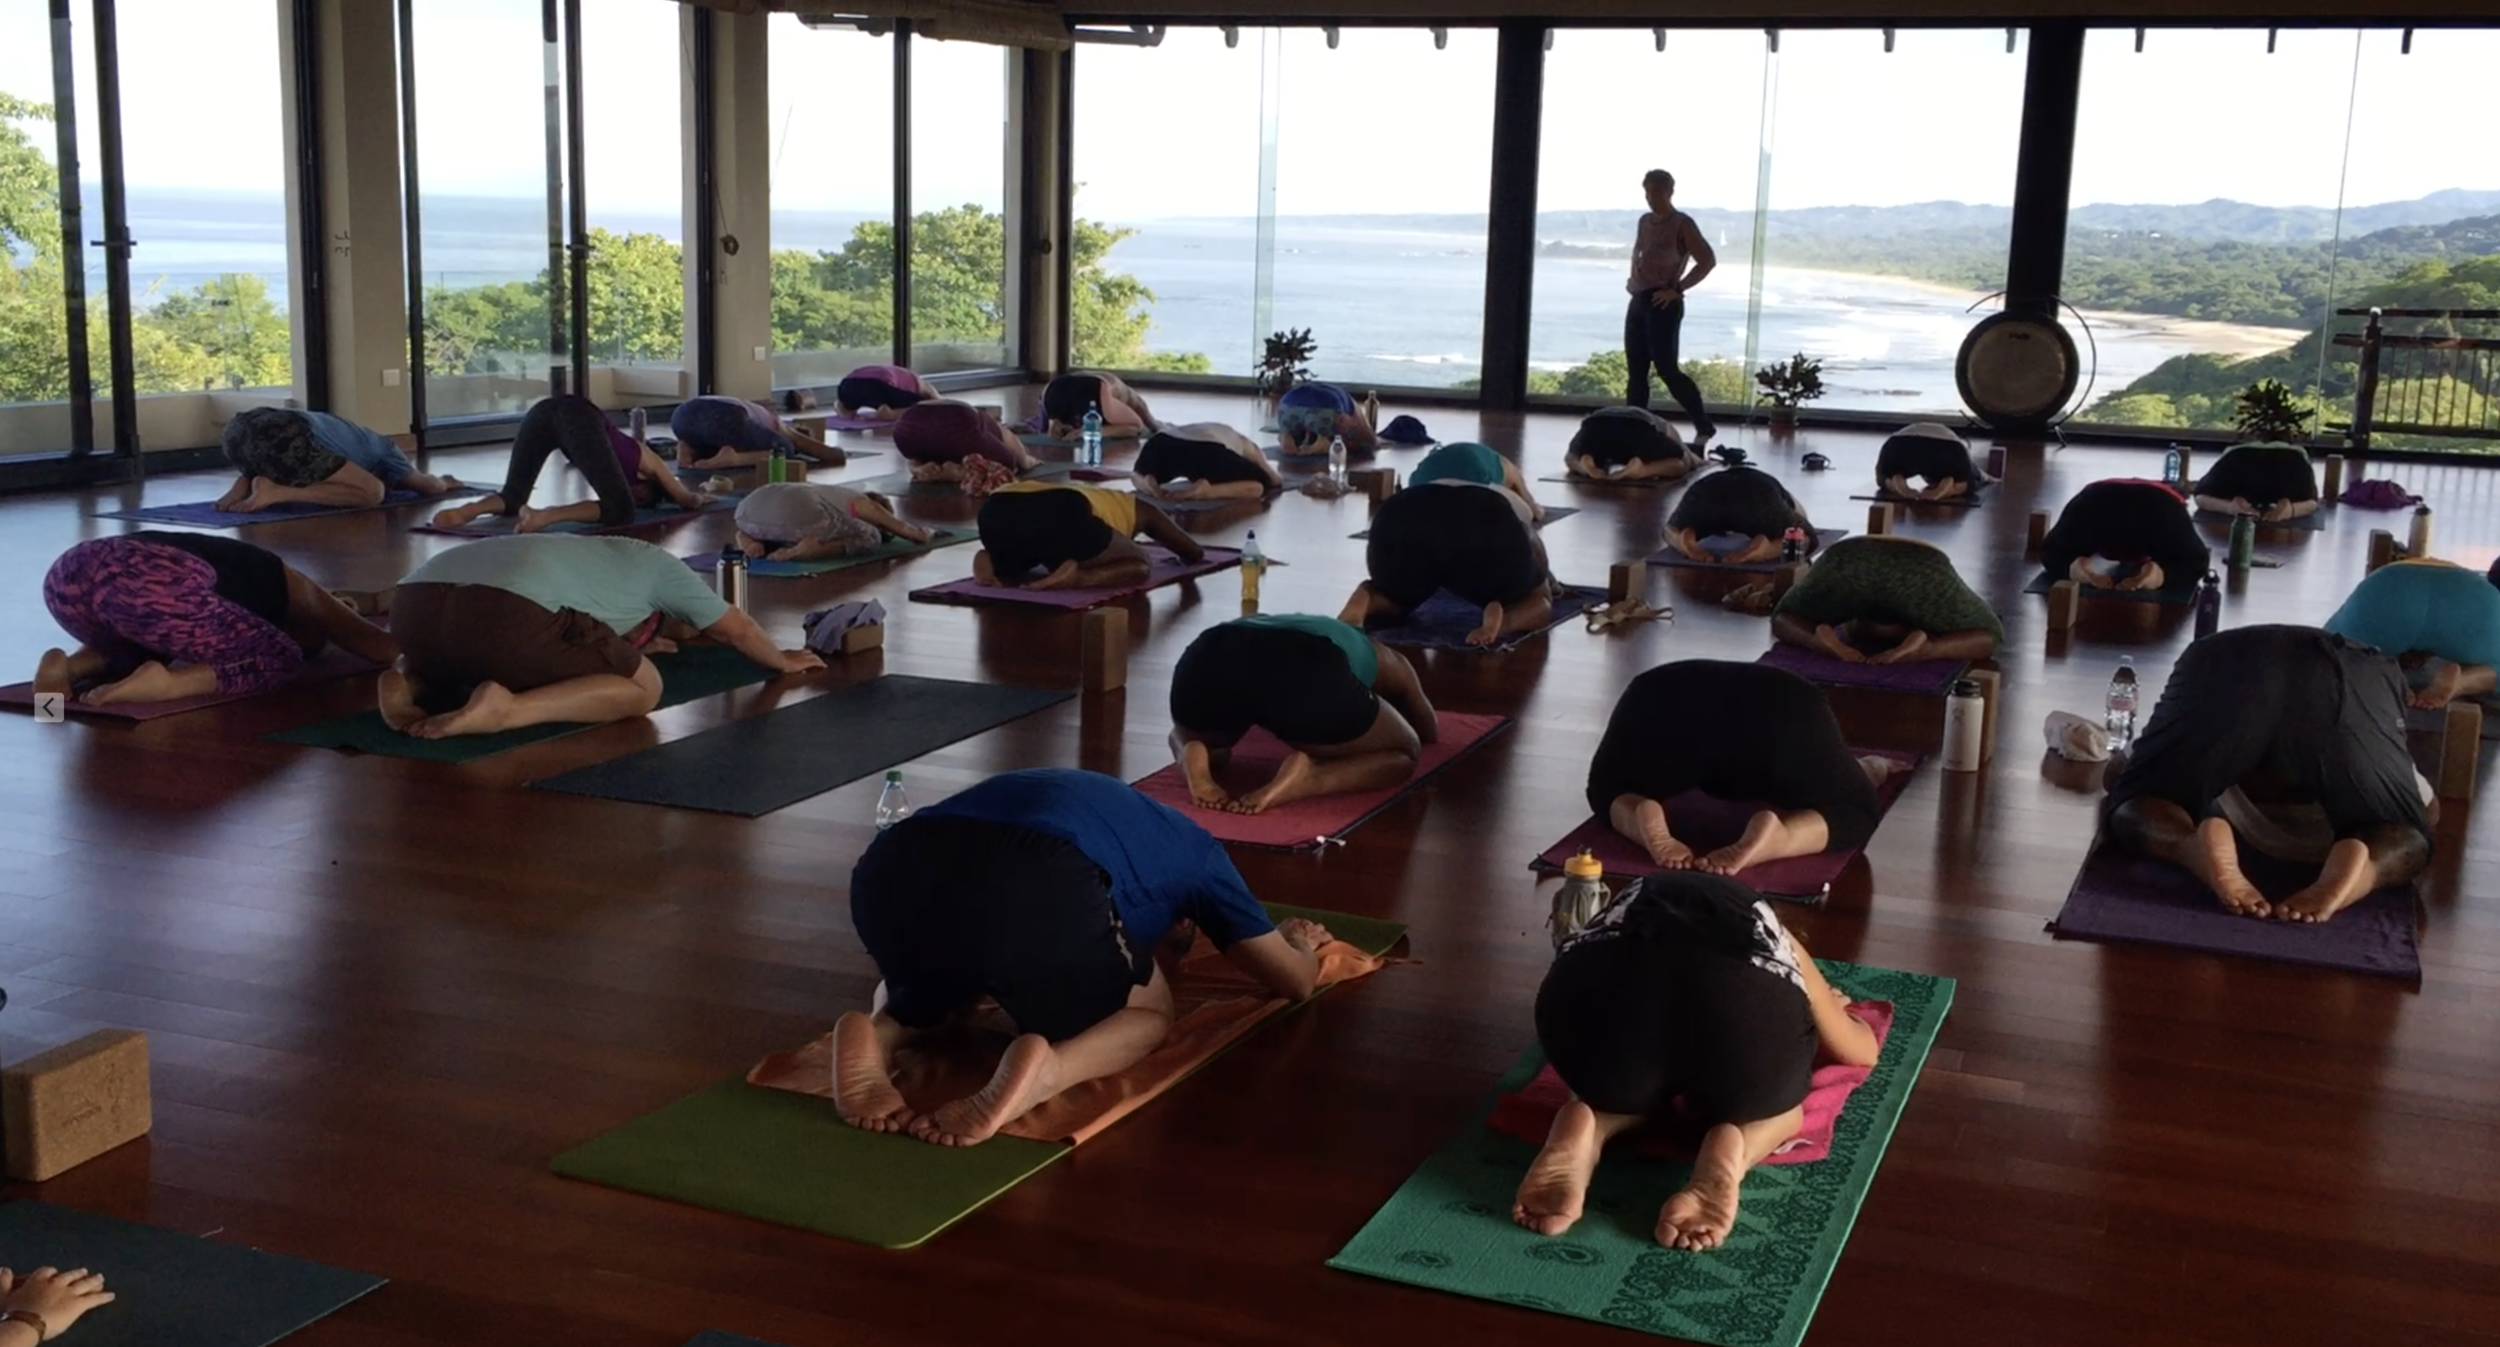 YP Yoga Teacher Training - YP offers 200Hr and 500Hr Yoga Teacher Training Certification.  All programs are Yoga Alliance Accredited.  YP holds programs in Ft. Worth, TX, Costa Rica, Thailand and Bali.